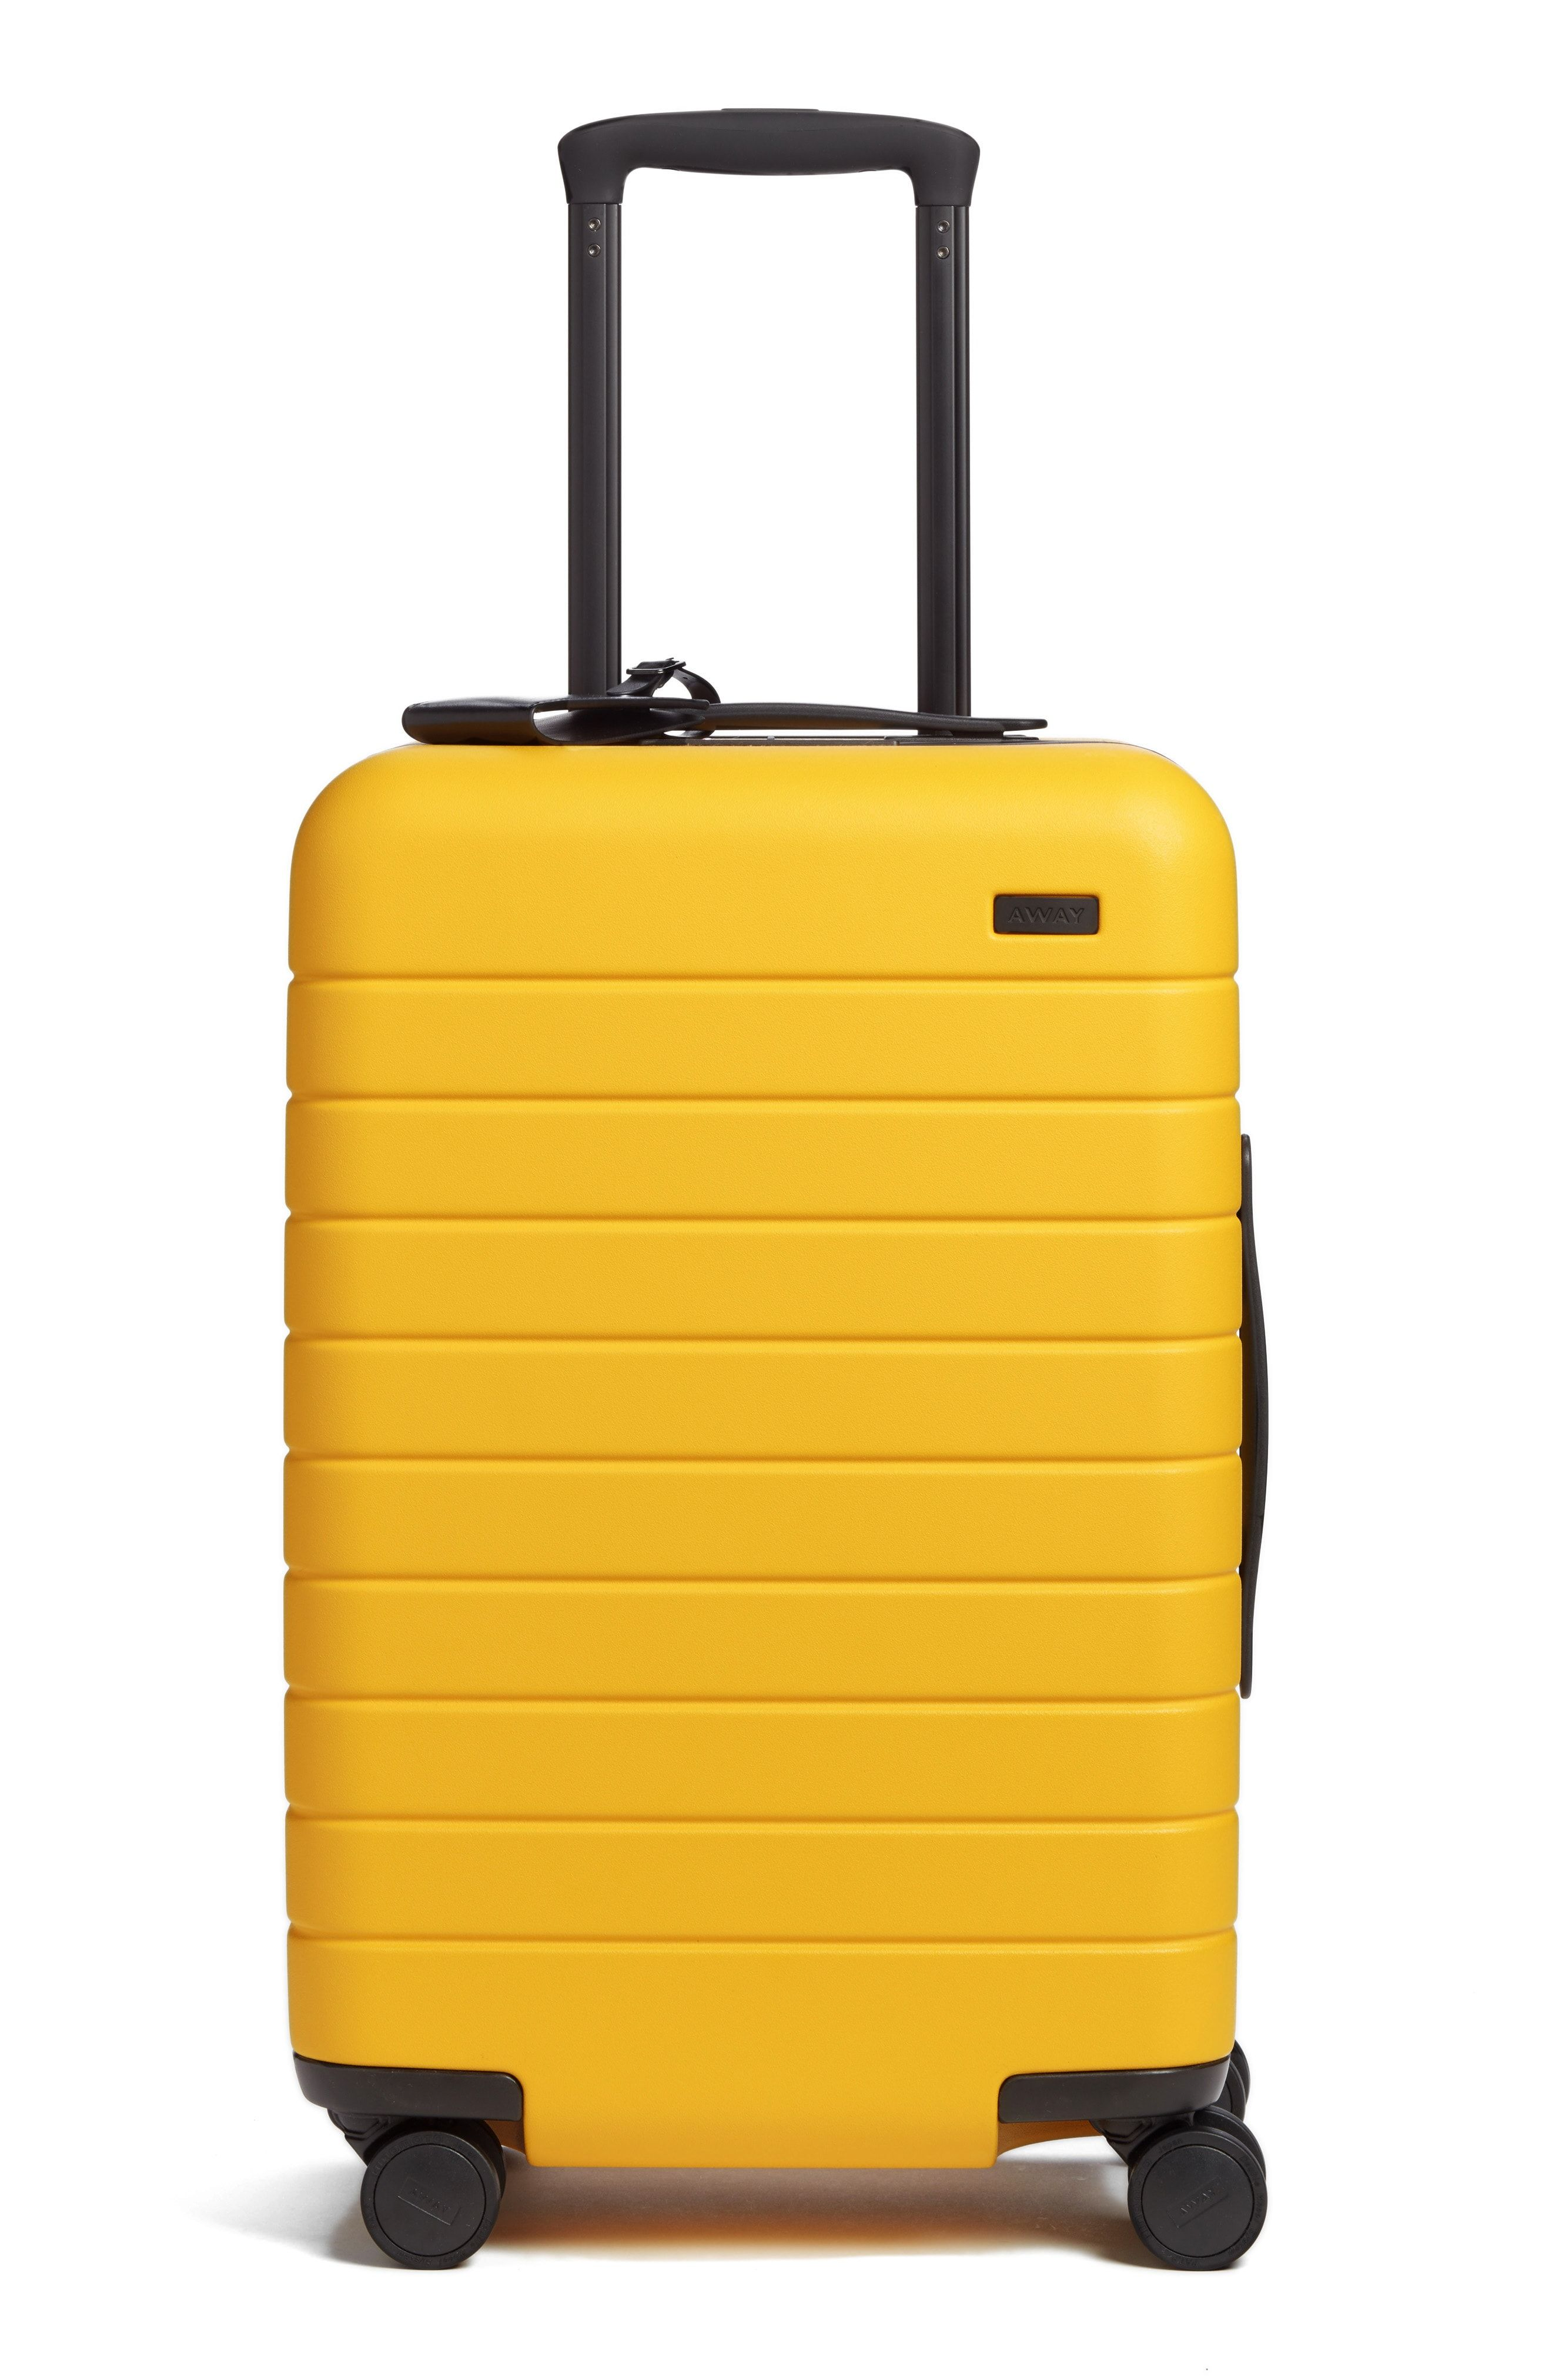 b45fca5d6b Away Luggage at Nordstrom - Buy Away Suitcases in Yellow, Blue, or Red at  Nordstrom